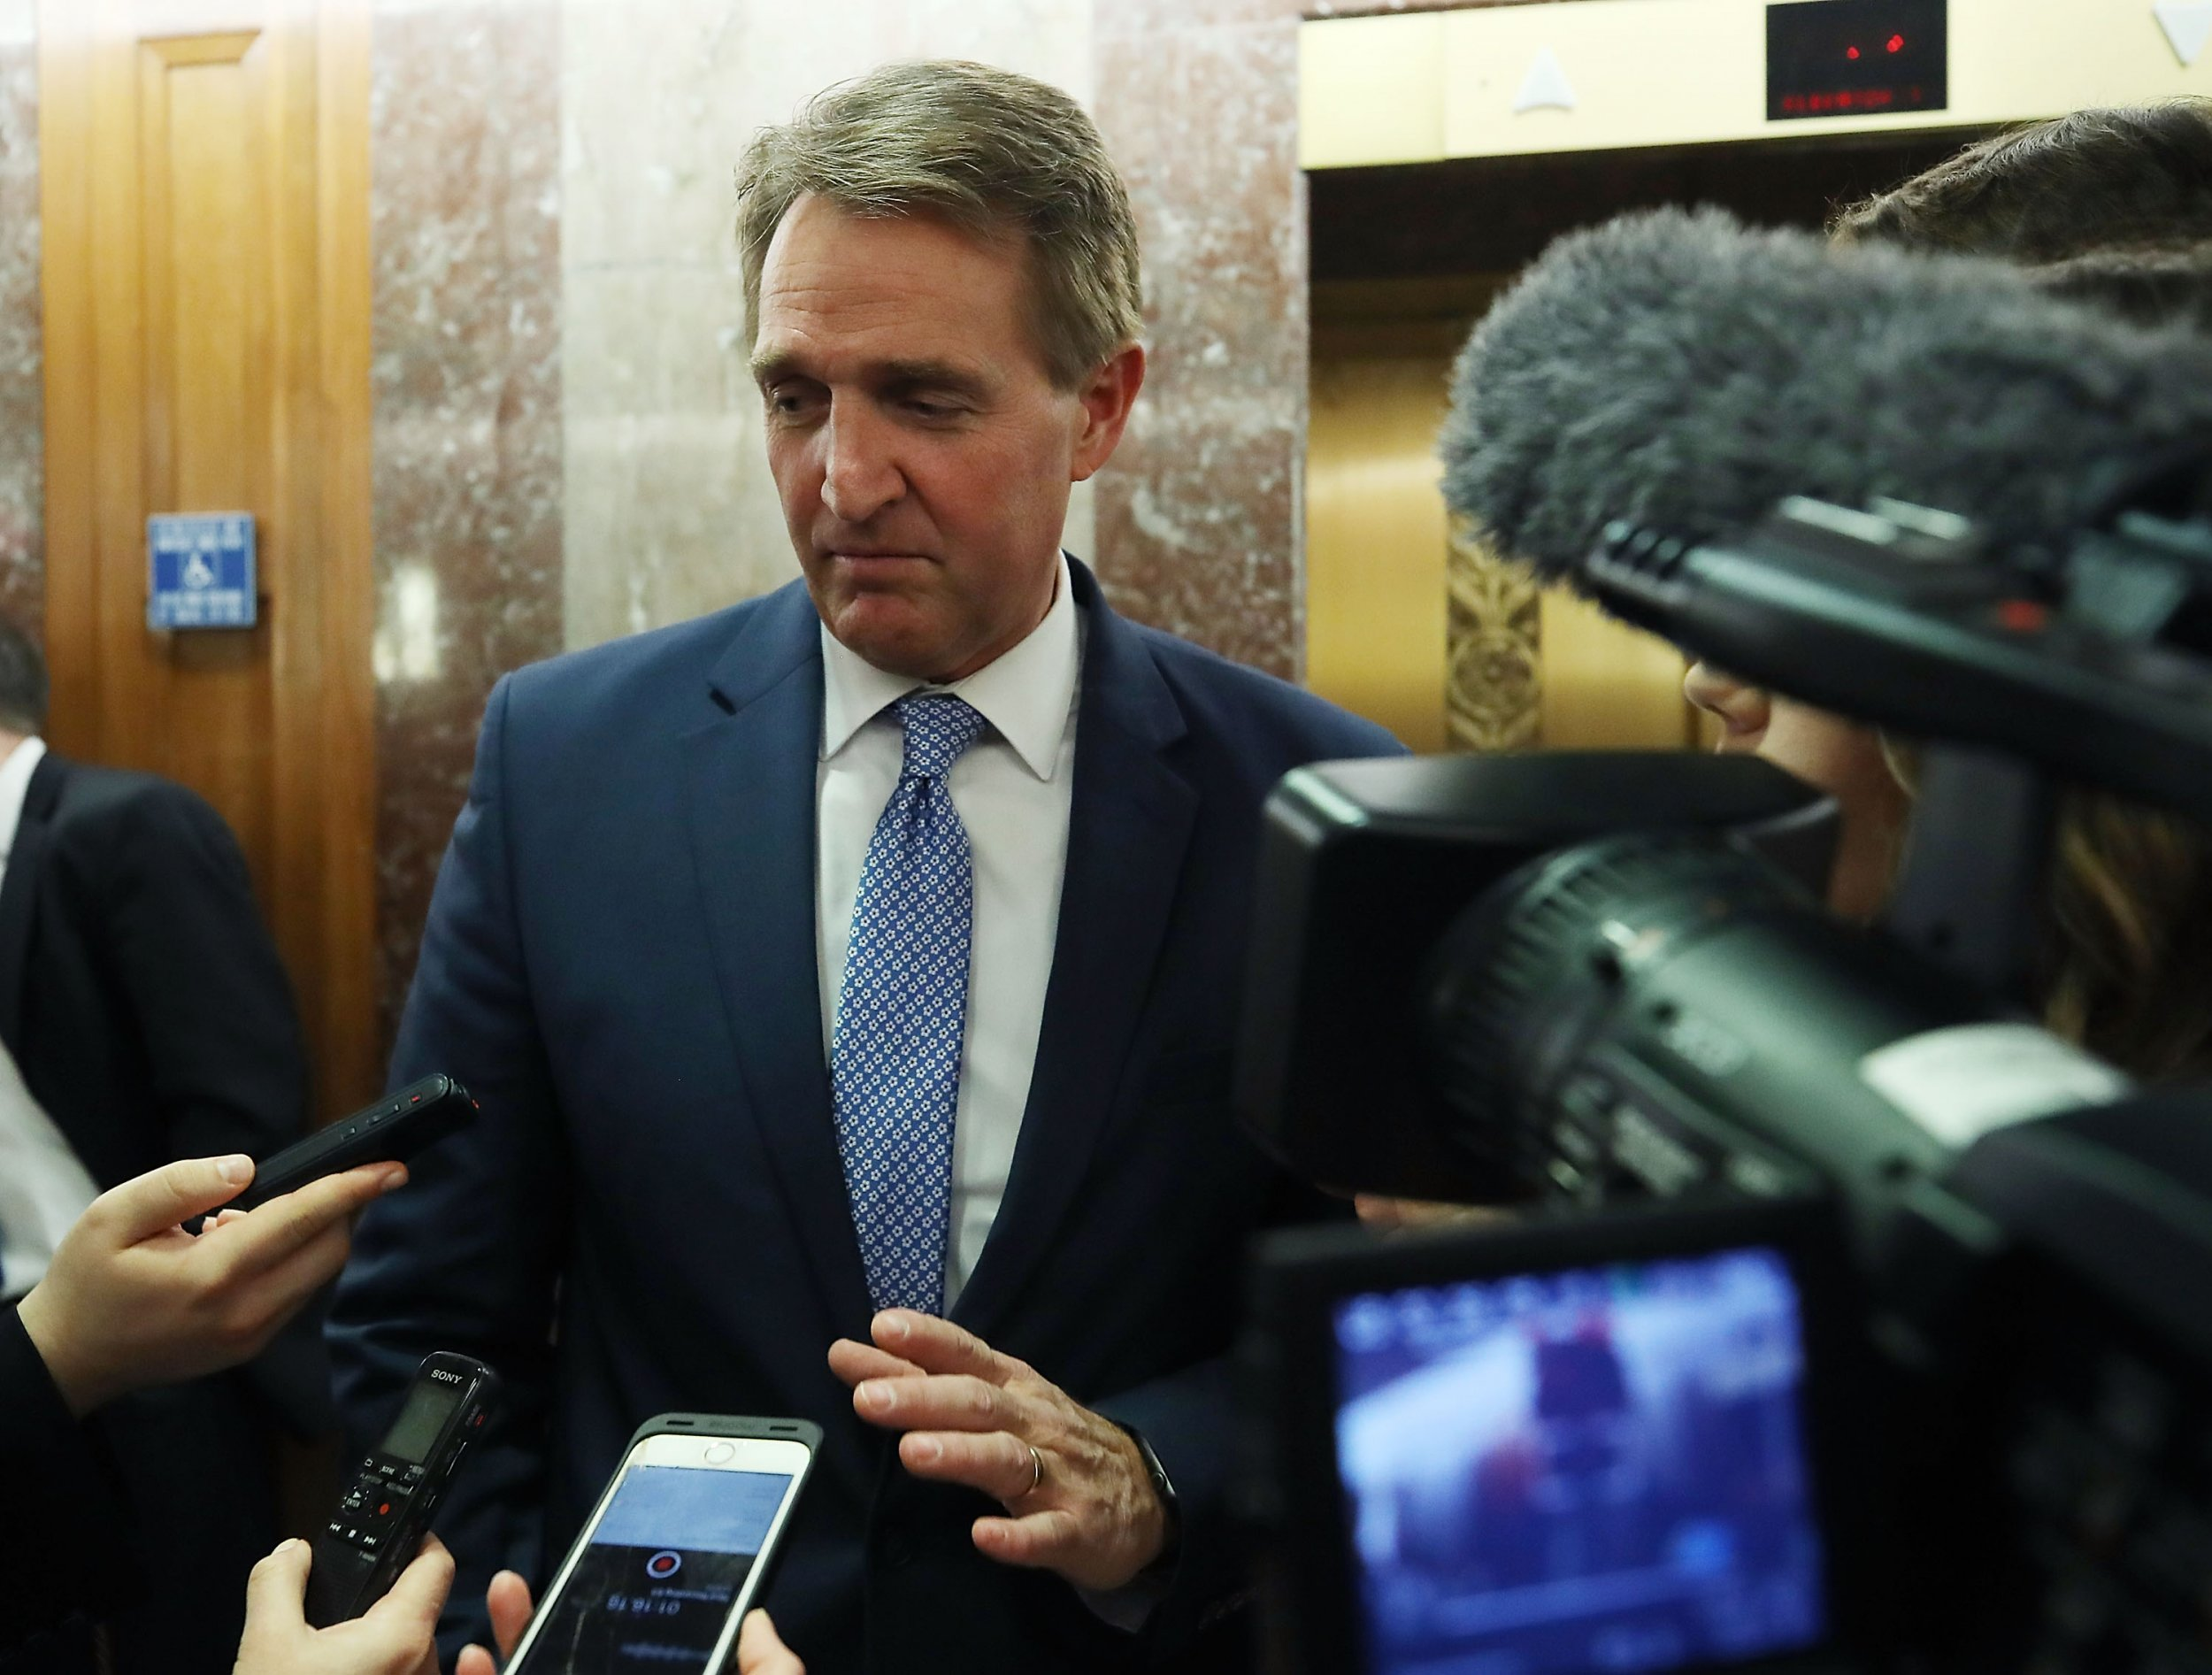 Can Jeff Flake Defeat Donald Trump? 'Things Can Unravel ...